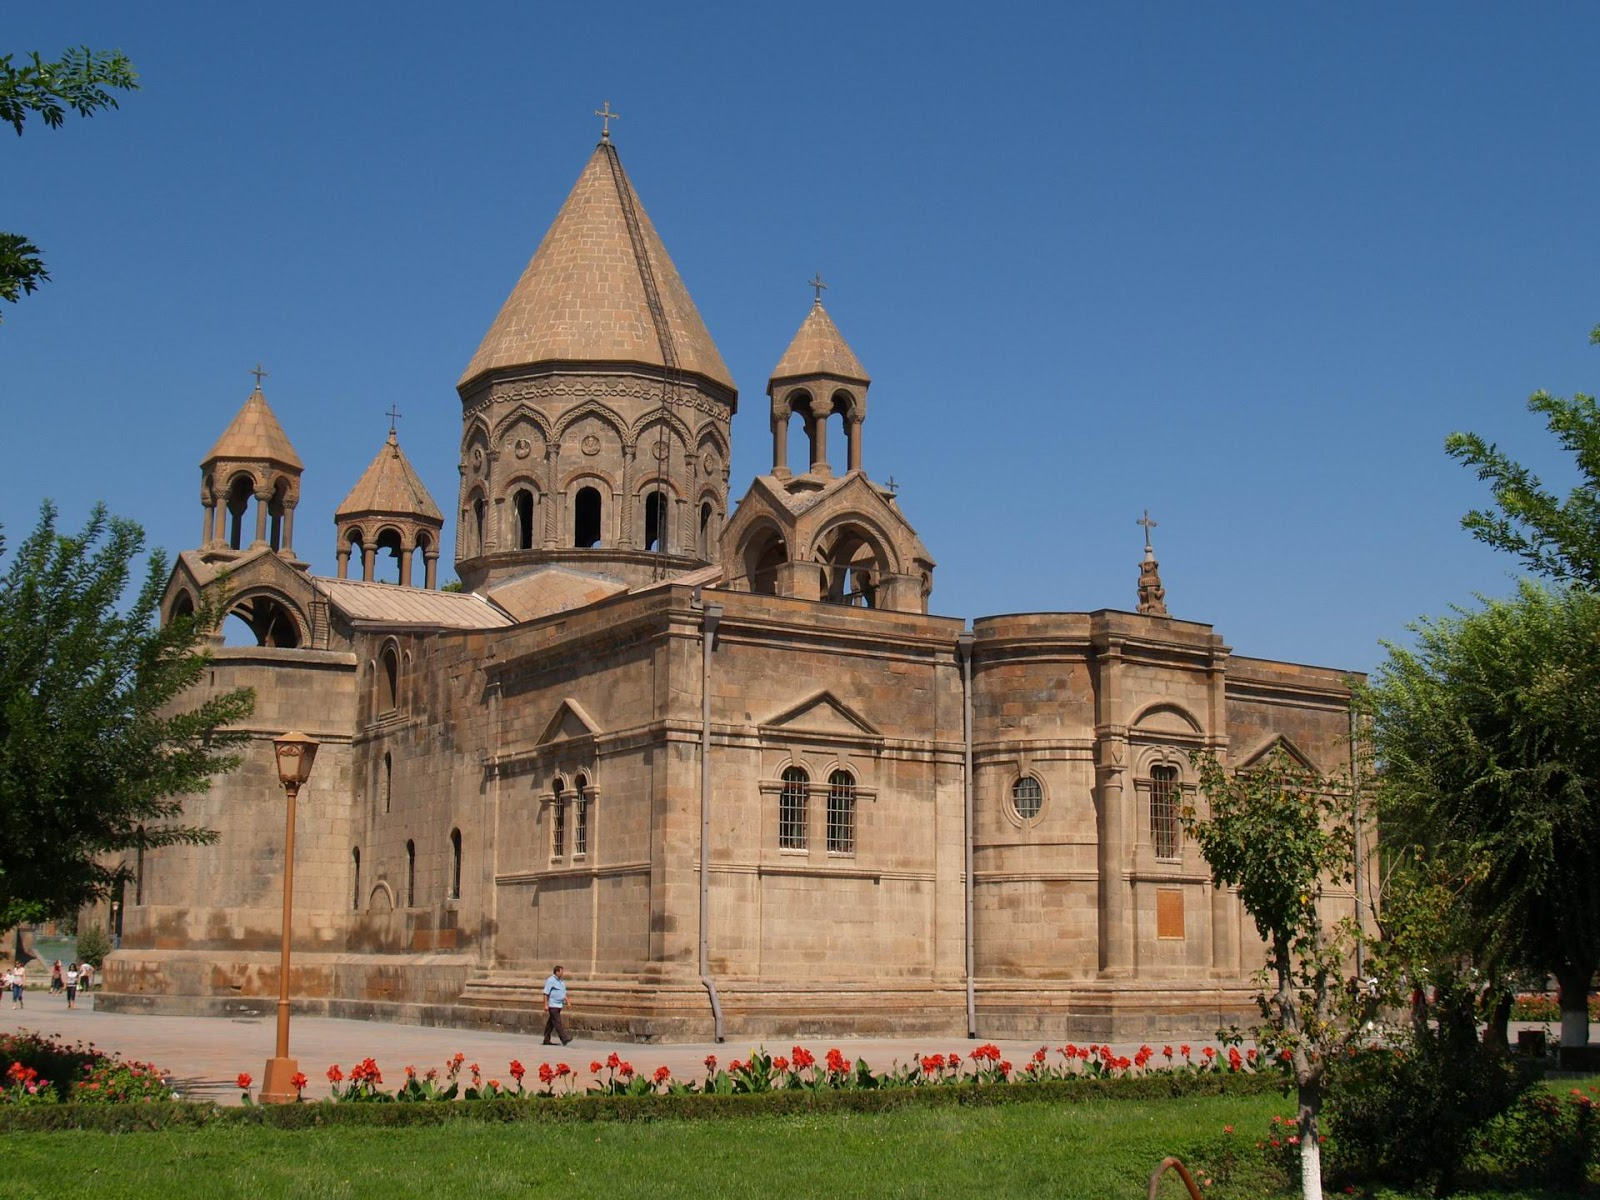 echmiadzin_cathedral_Yerevan+_Armenia_tourism_yerevan_city_pictures.jpg